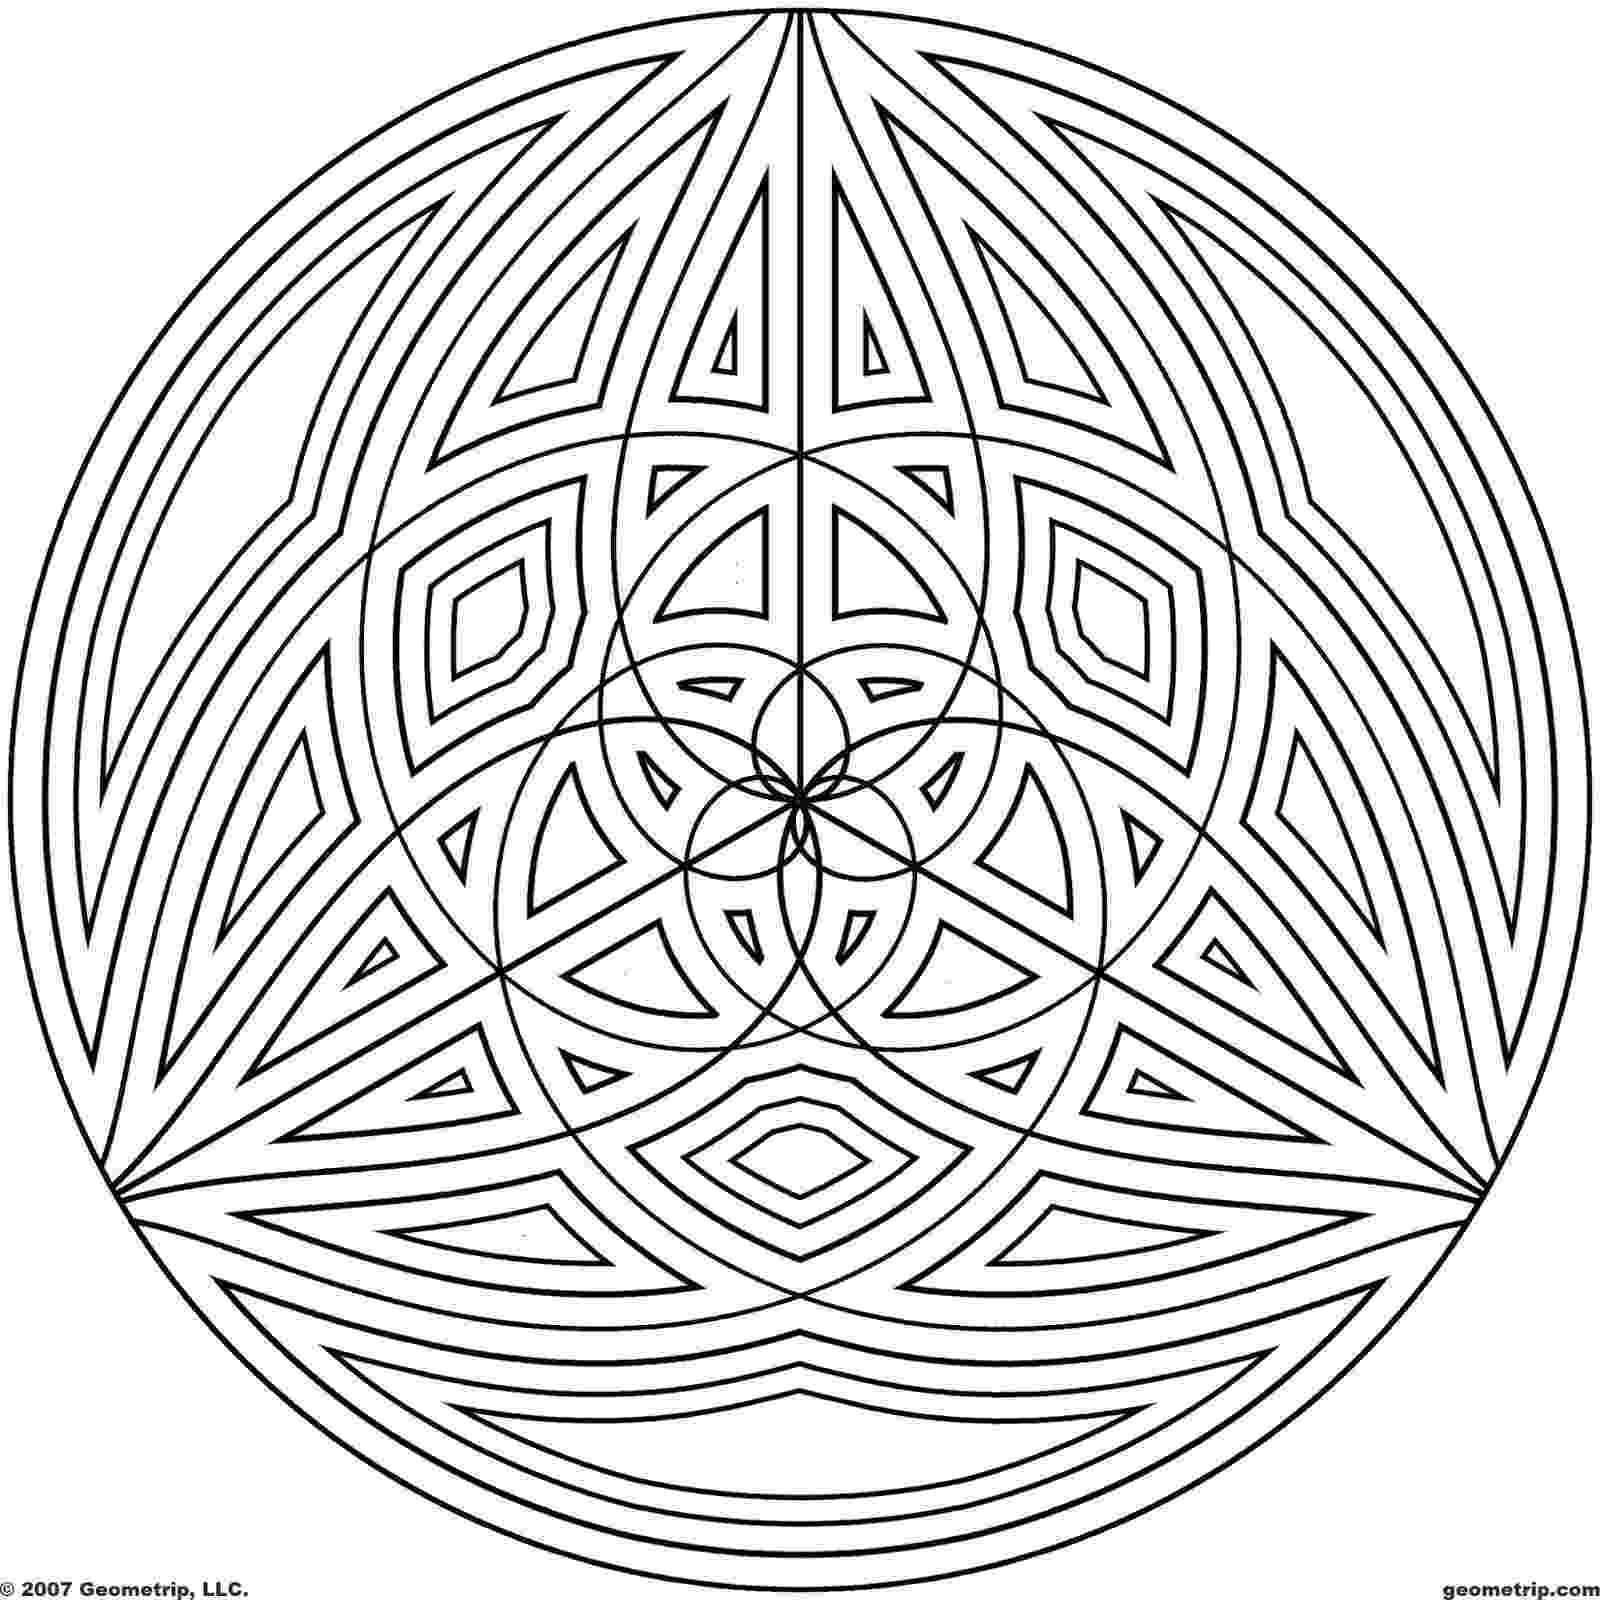 free coloring pages with designs pattern coloring pages best coloring pages for kids free coloring designs with pages